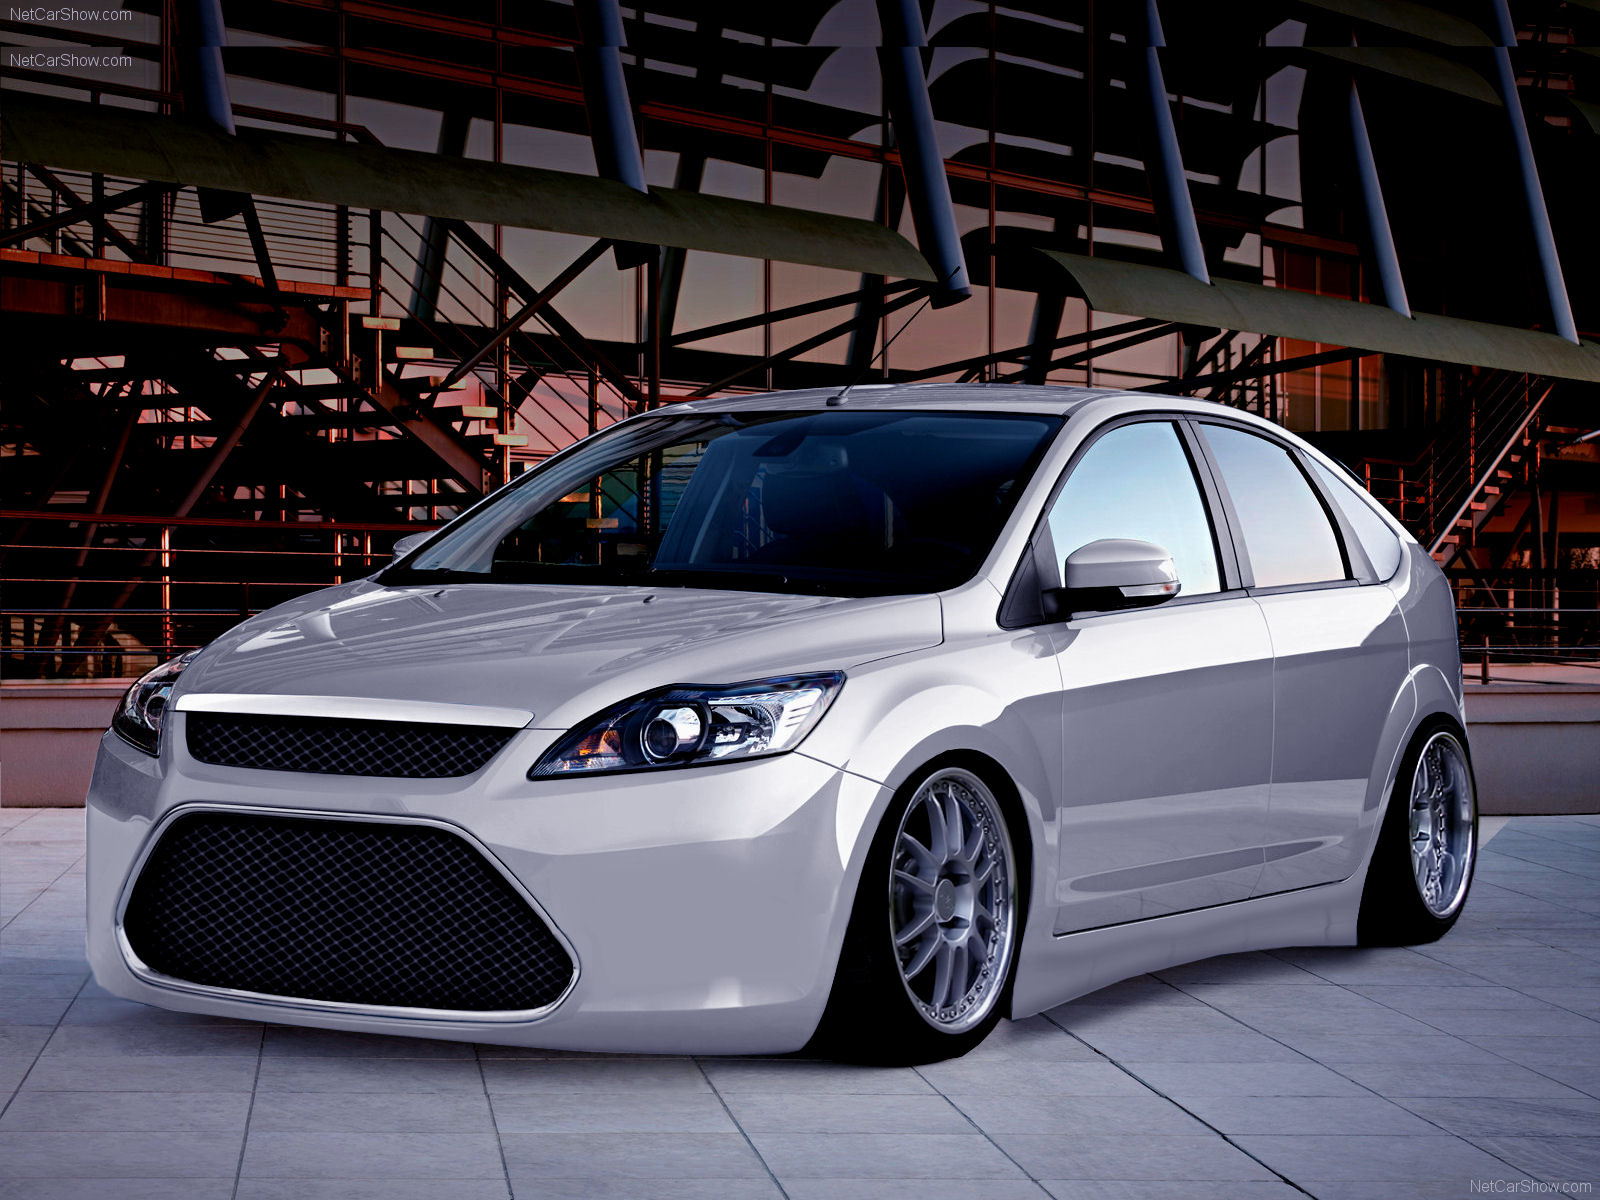 Ford Focus 2012 Ford Focus wallpaper 1600x1200